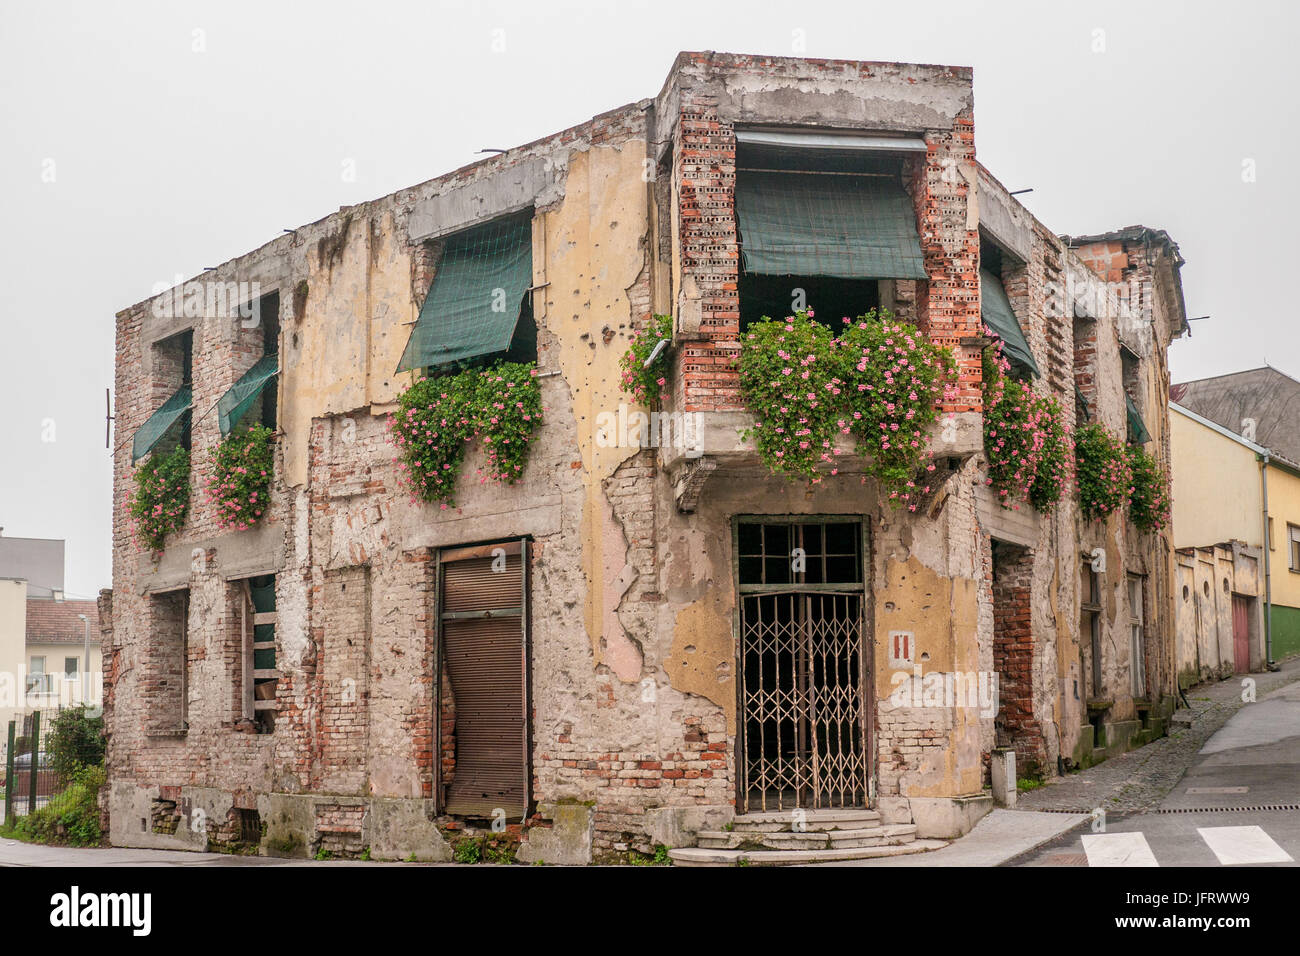 A battle scarred memorial building in Vukovar, Croatia, showing damages from the Yugoslav Wars in the 90s. - Stock Image